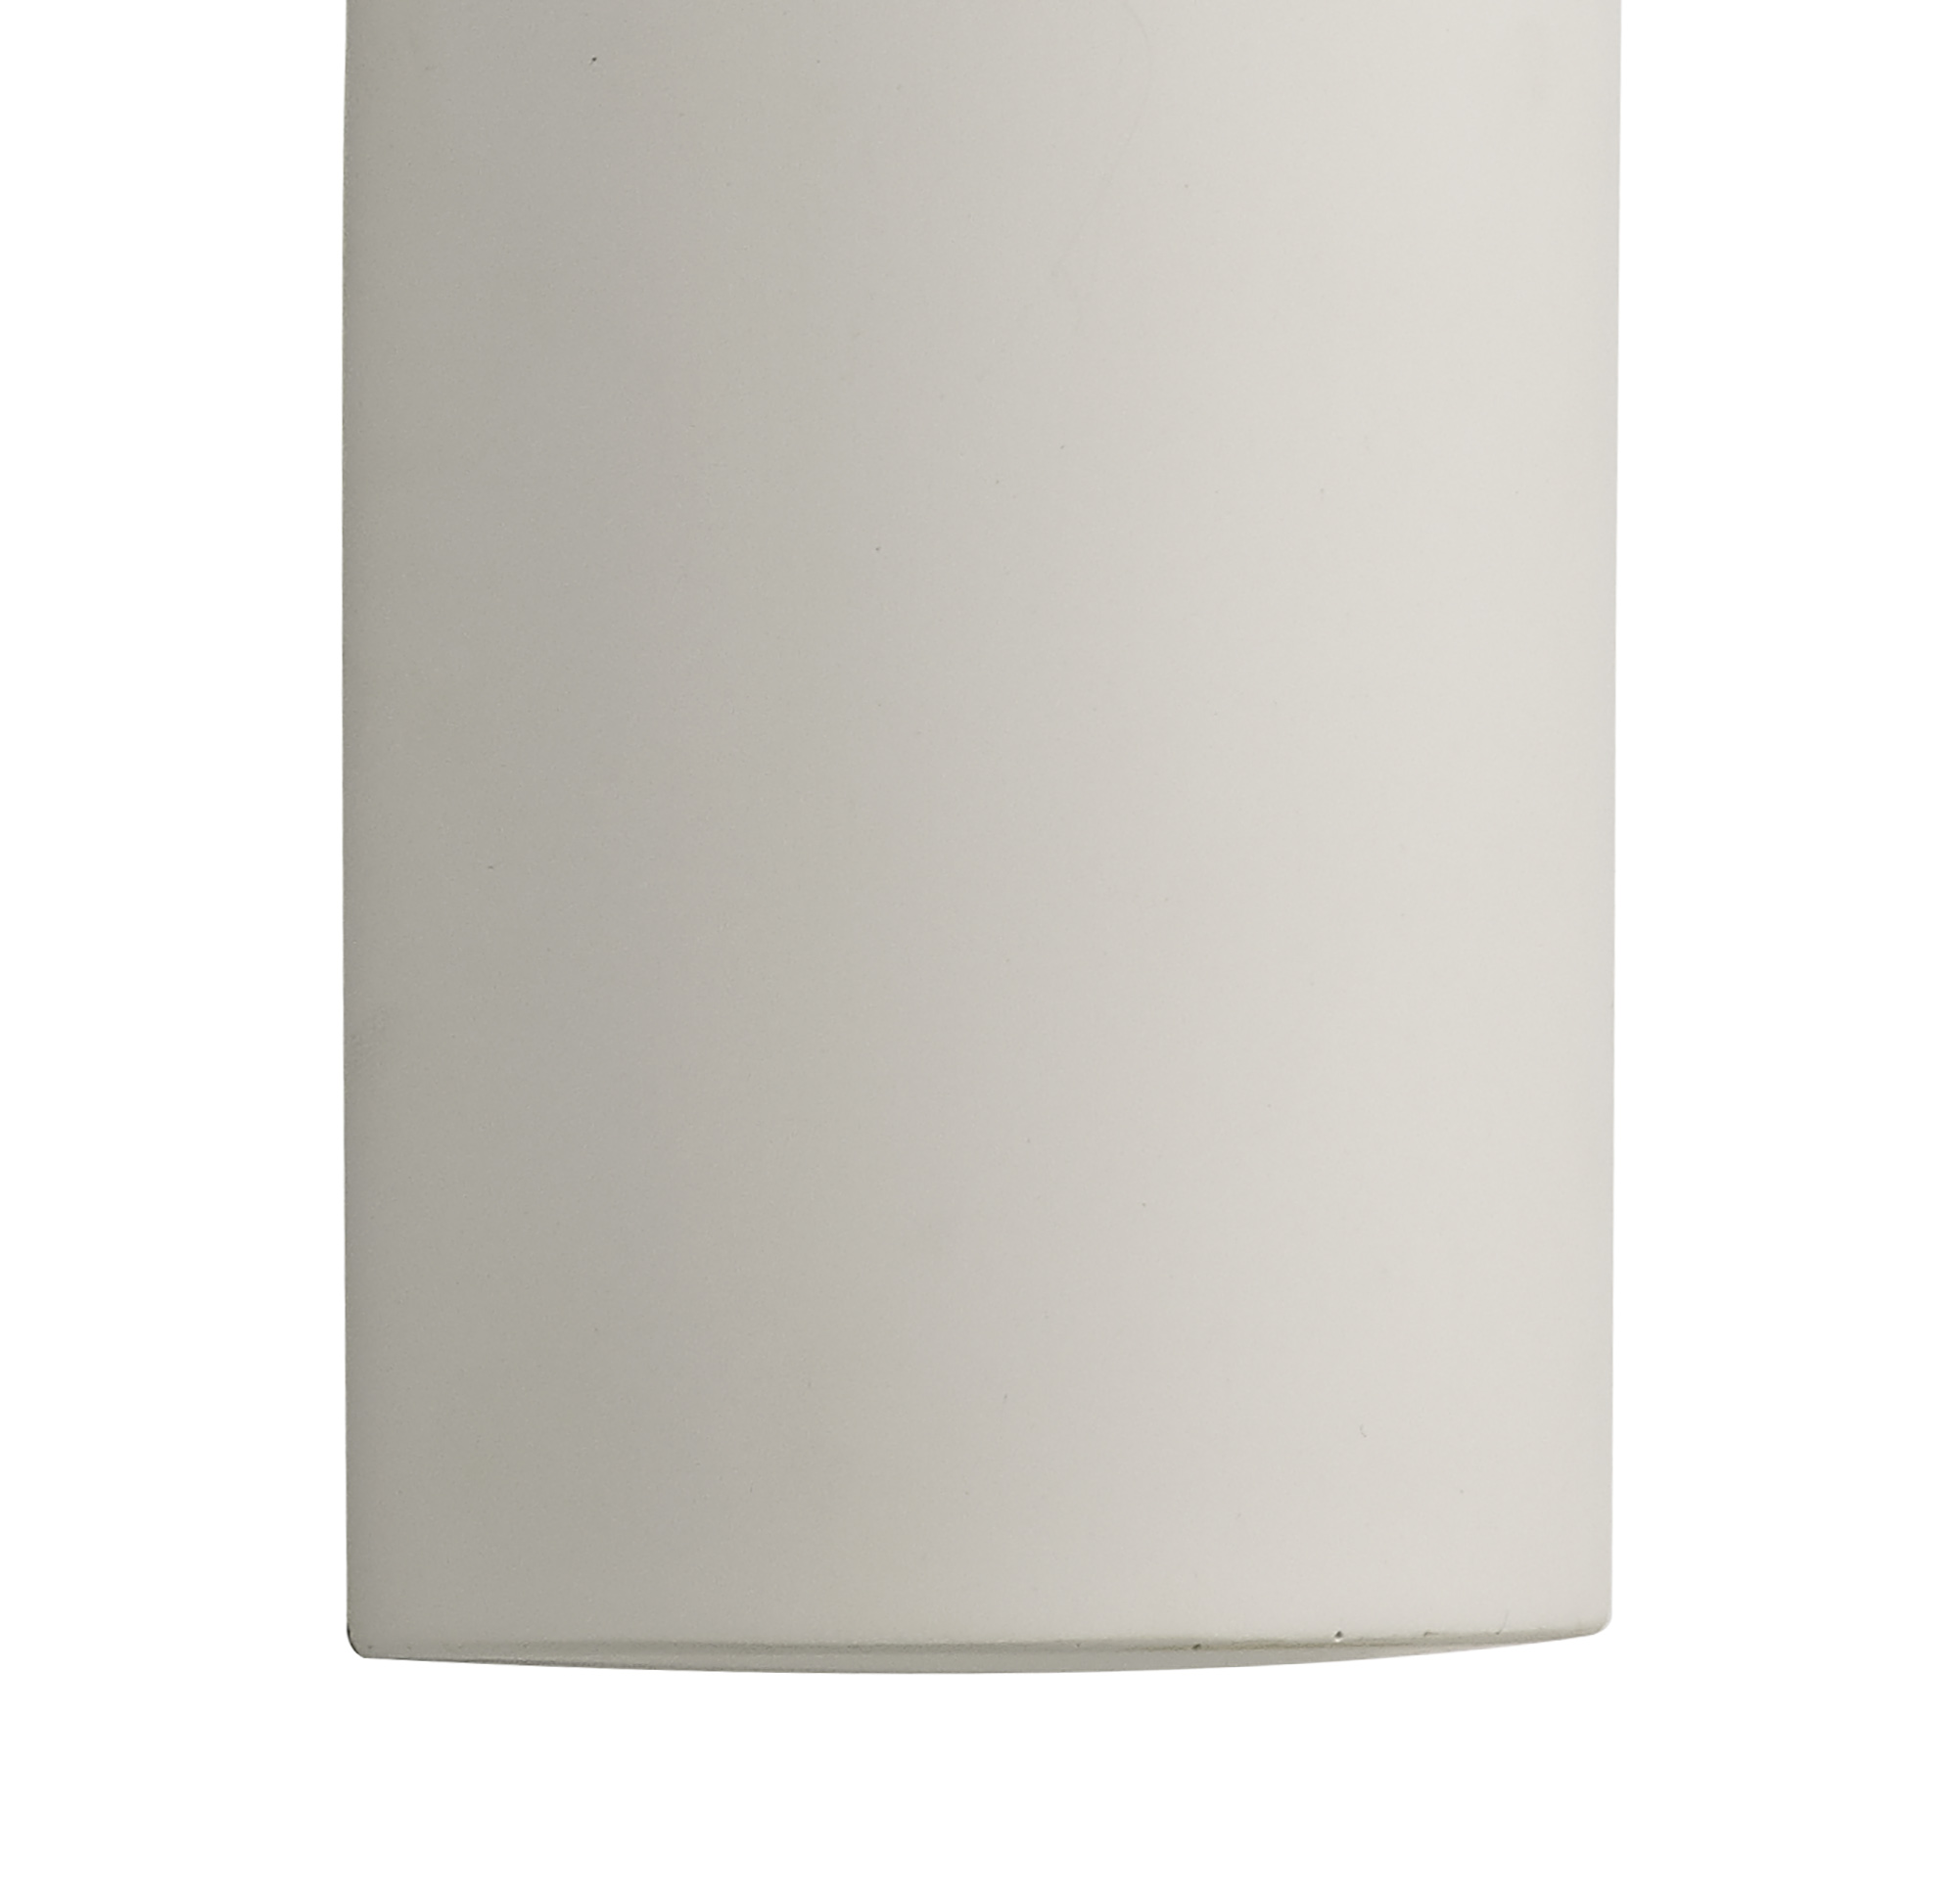 Uplighter Wall Lamp, 1 x 4.5W LED, 3000K, 275lm, White Paintable Gypsum, 3yrs Warranty